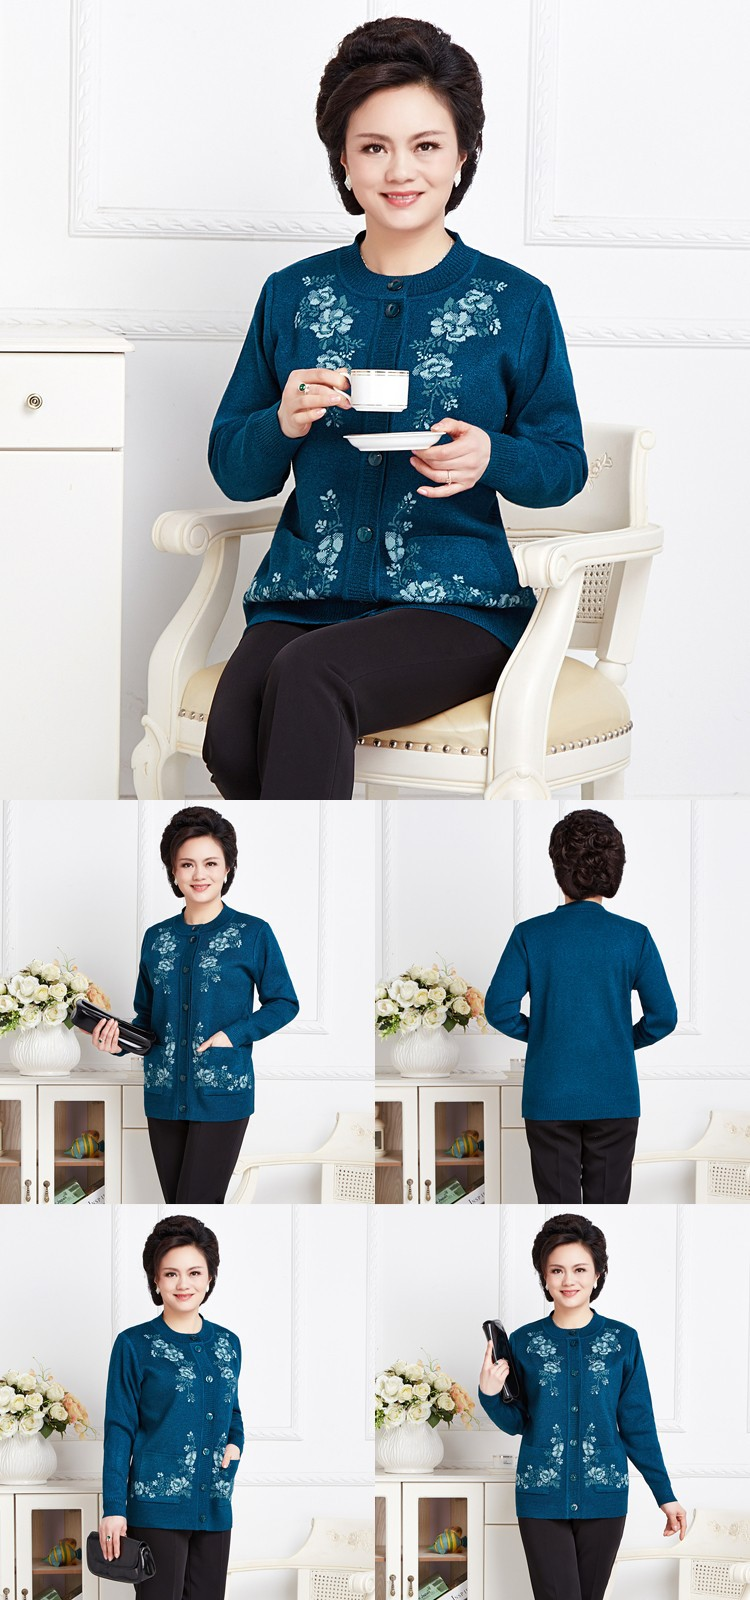 Winter Warm Wool Sweater For Women Pullover Female Printing Flower Knitted Ladies Embroidered Sweaters Pullovers bbb